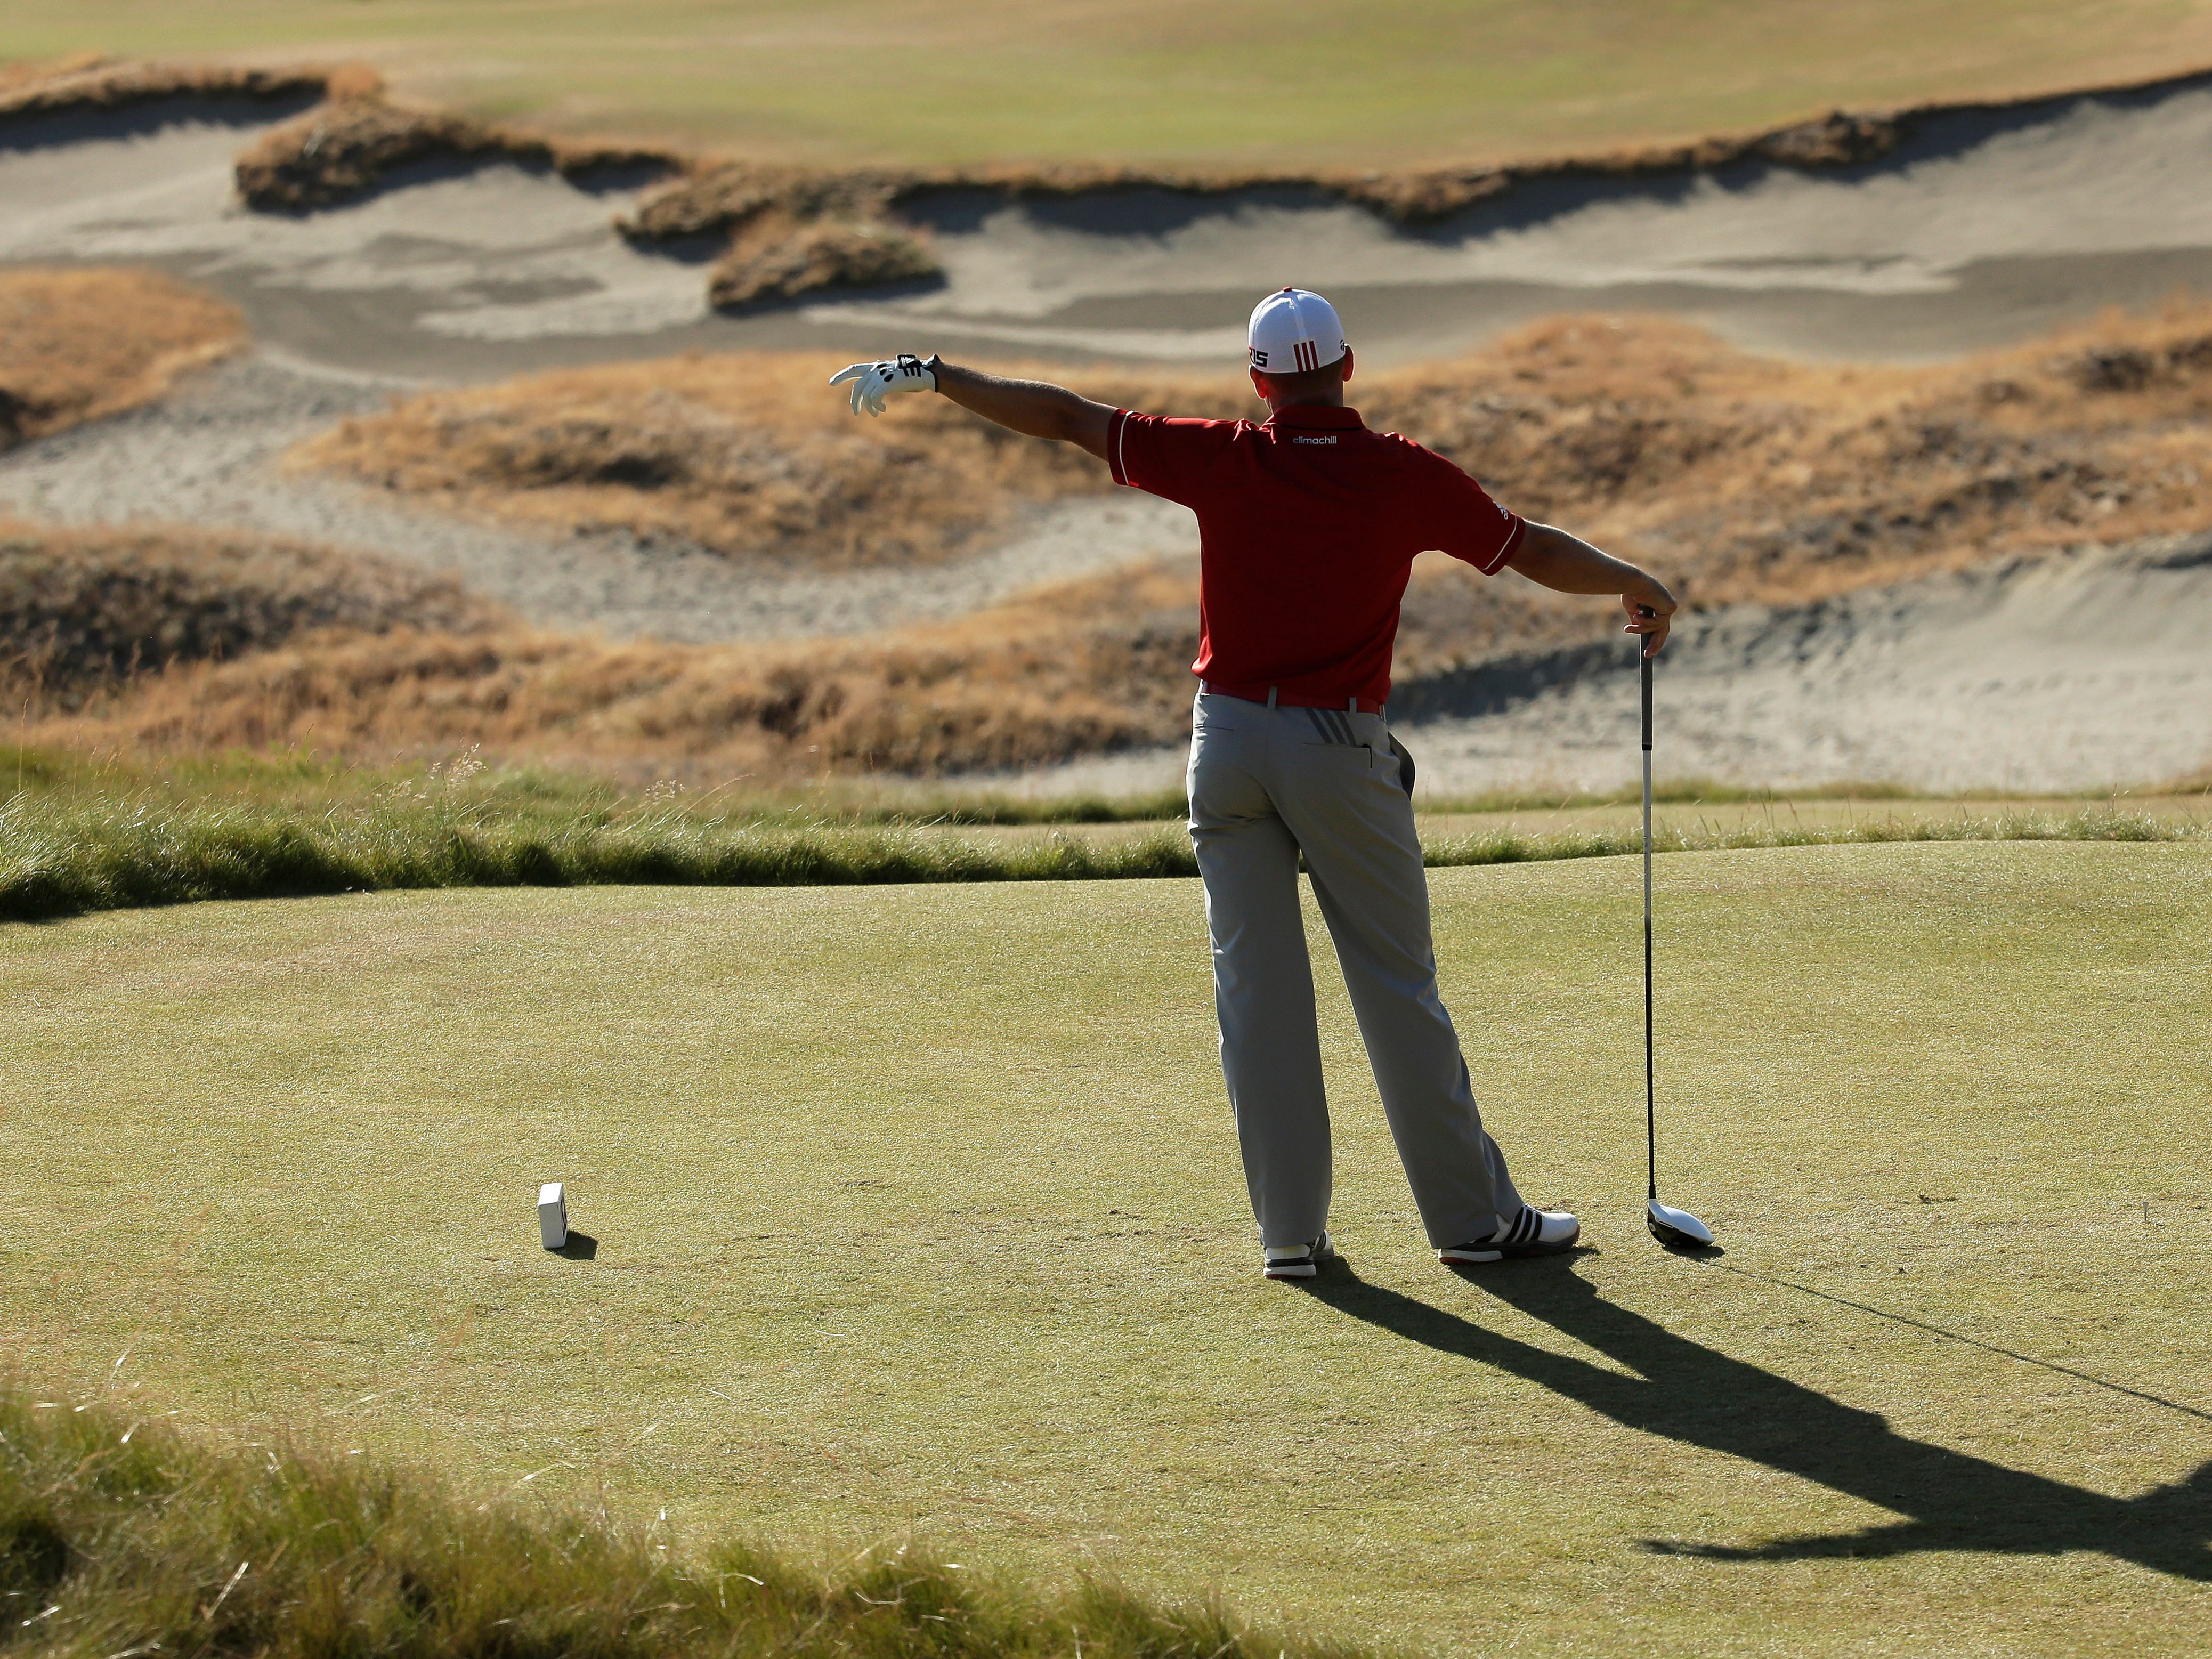 Sergio Garcia, of Spain, watches his tee shot on the 14th hole during the second round of the U.S. Open golf tournament at Chambers Bay on Friday, June 19, 2015 in University Place, Wash. (AP Photo/Charlie Riedel)